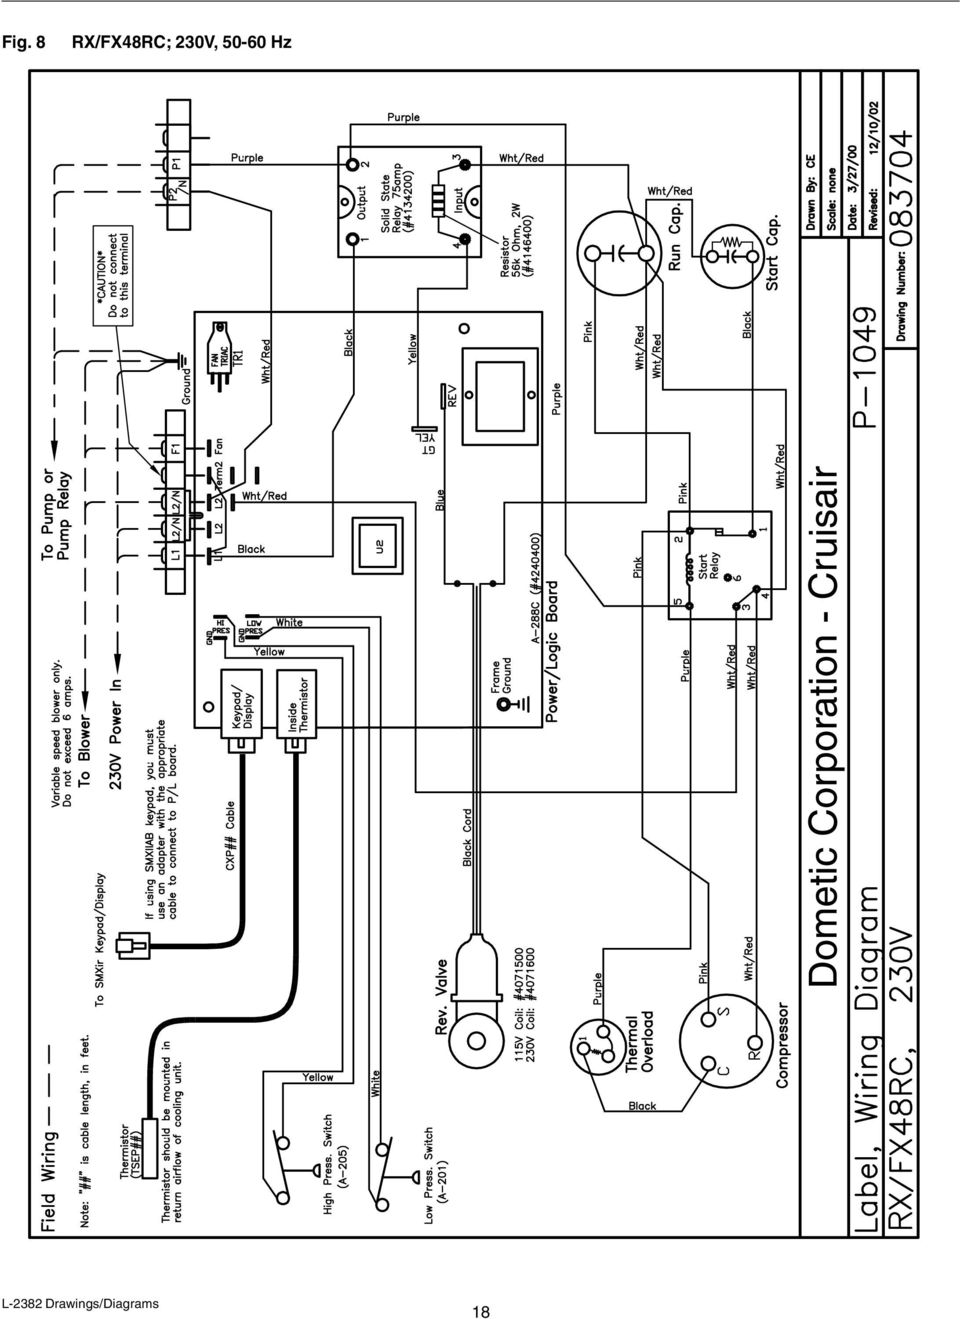 SMX II Control Systems (DX) - PDF Cruisair Pport Wiring Diagram on